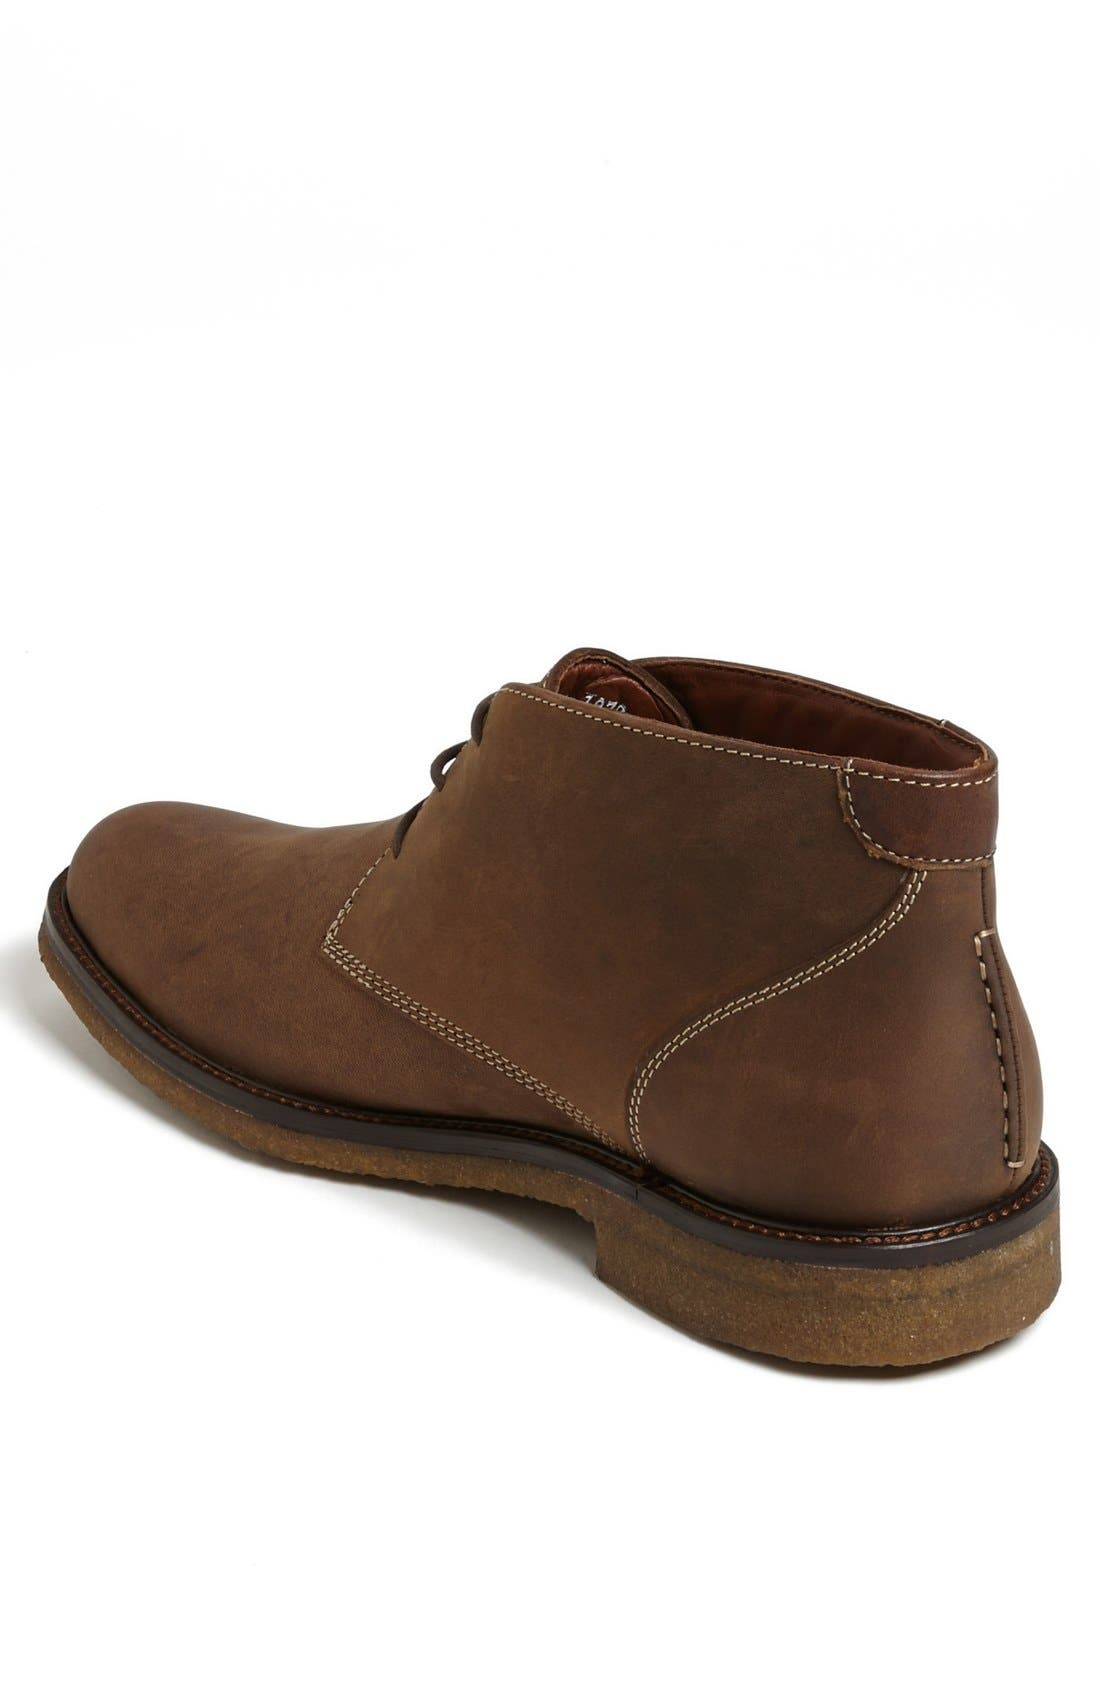 'Copeland' Suede Chukka Boot,                             Alternate thumbnail 24, color,